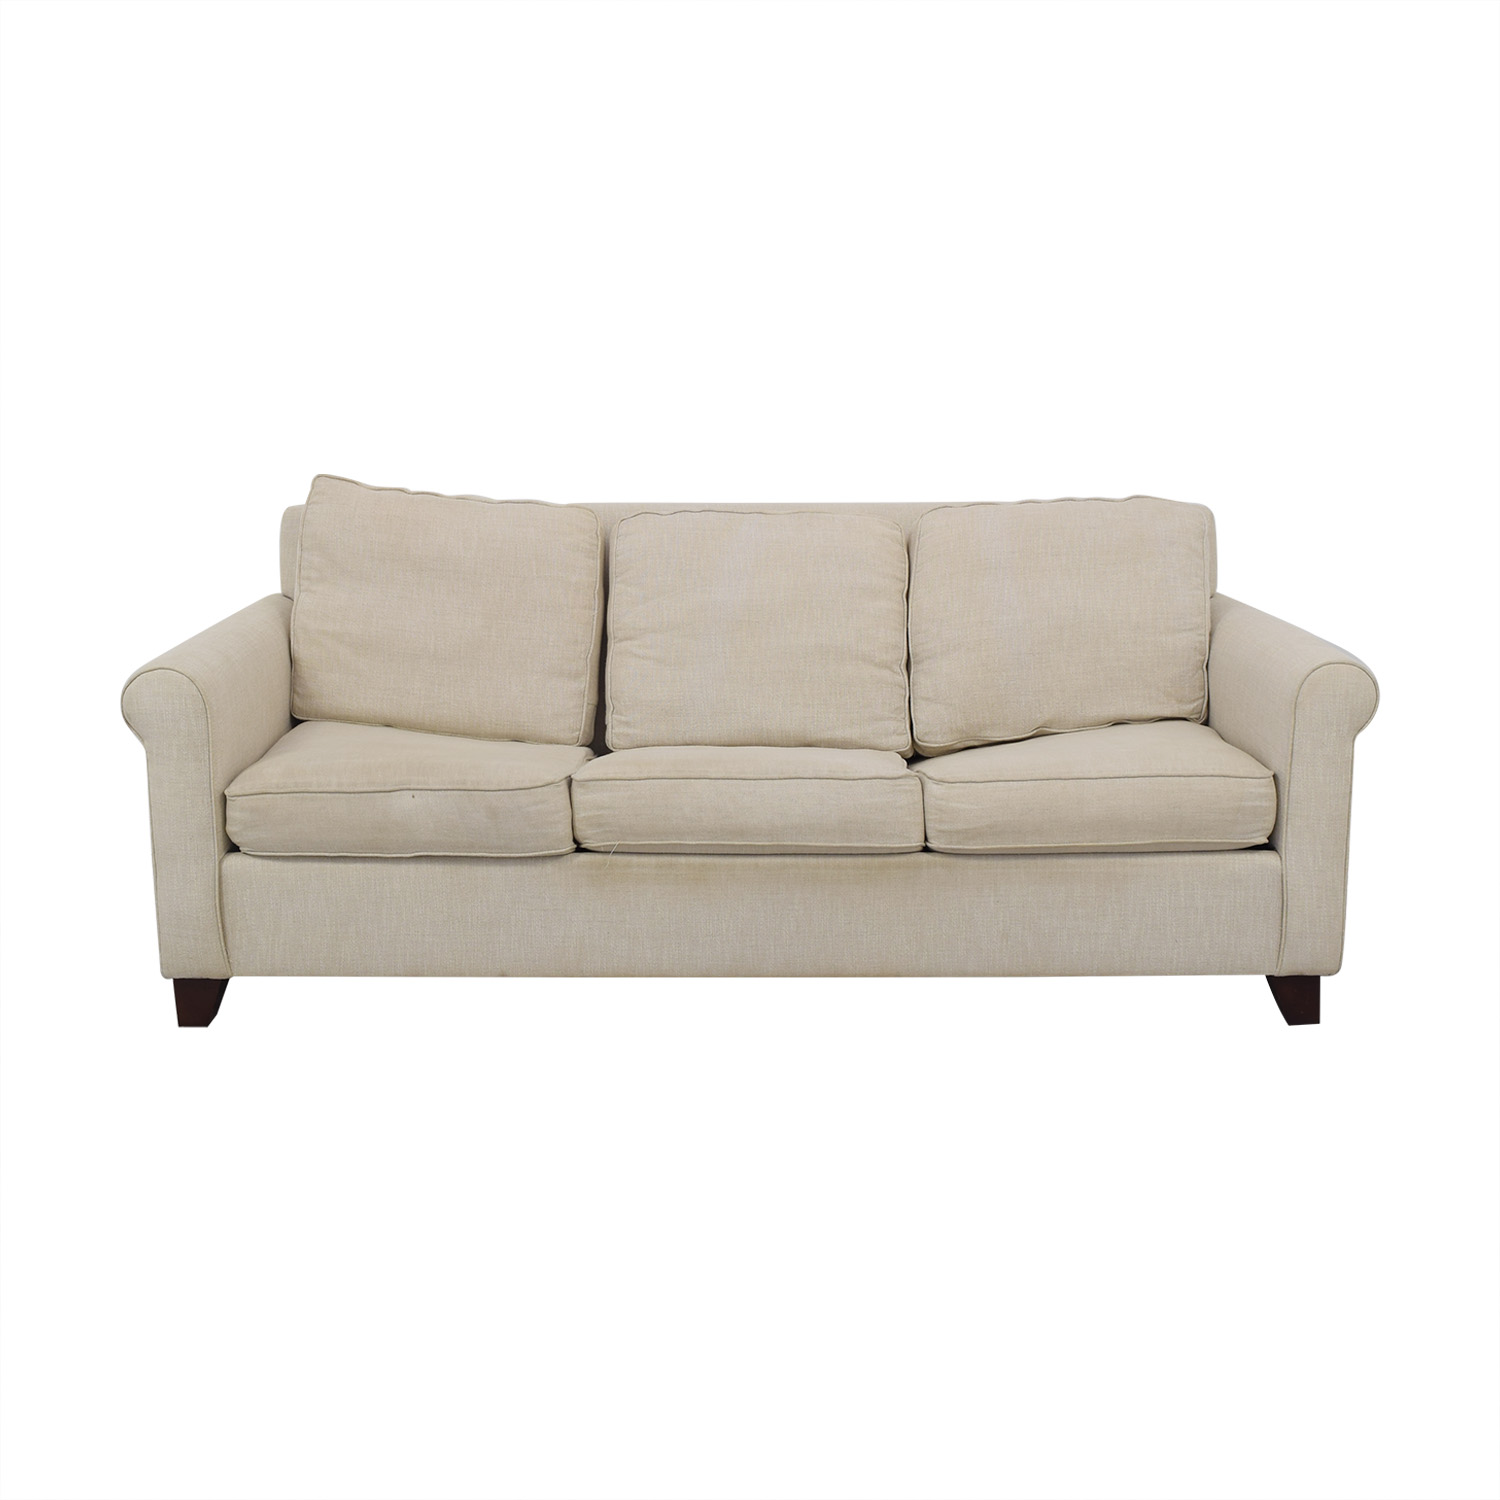 65% OFF - West Elm West Elm Henry Sectional Sofa Bed with ...